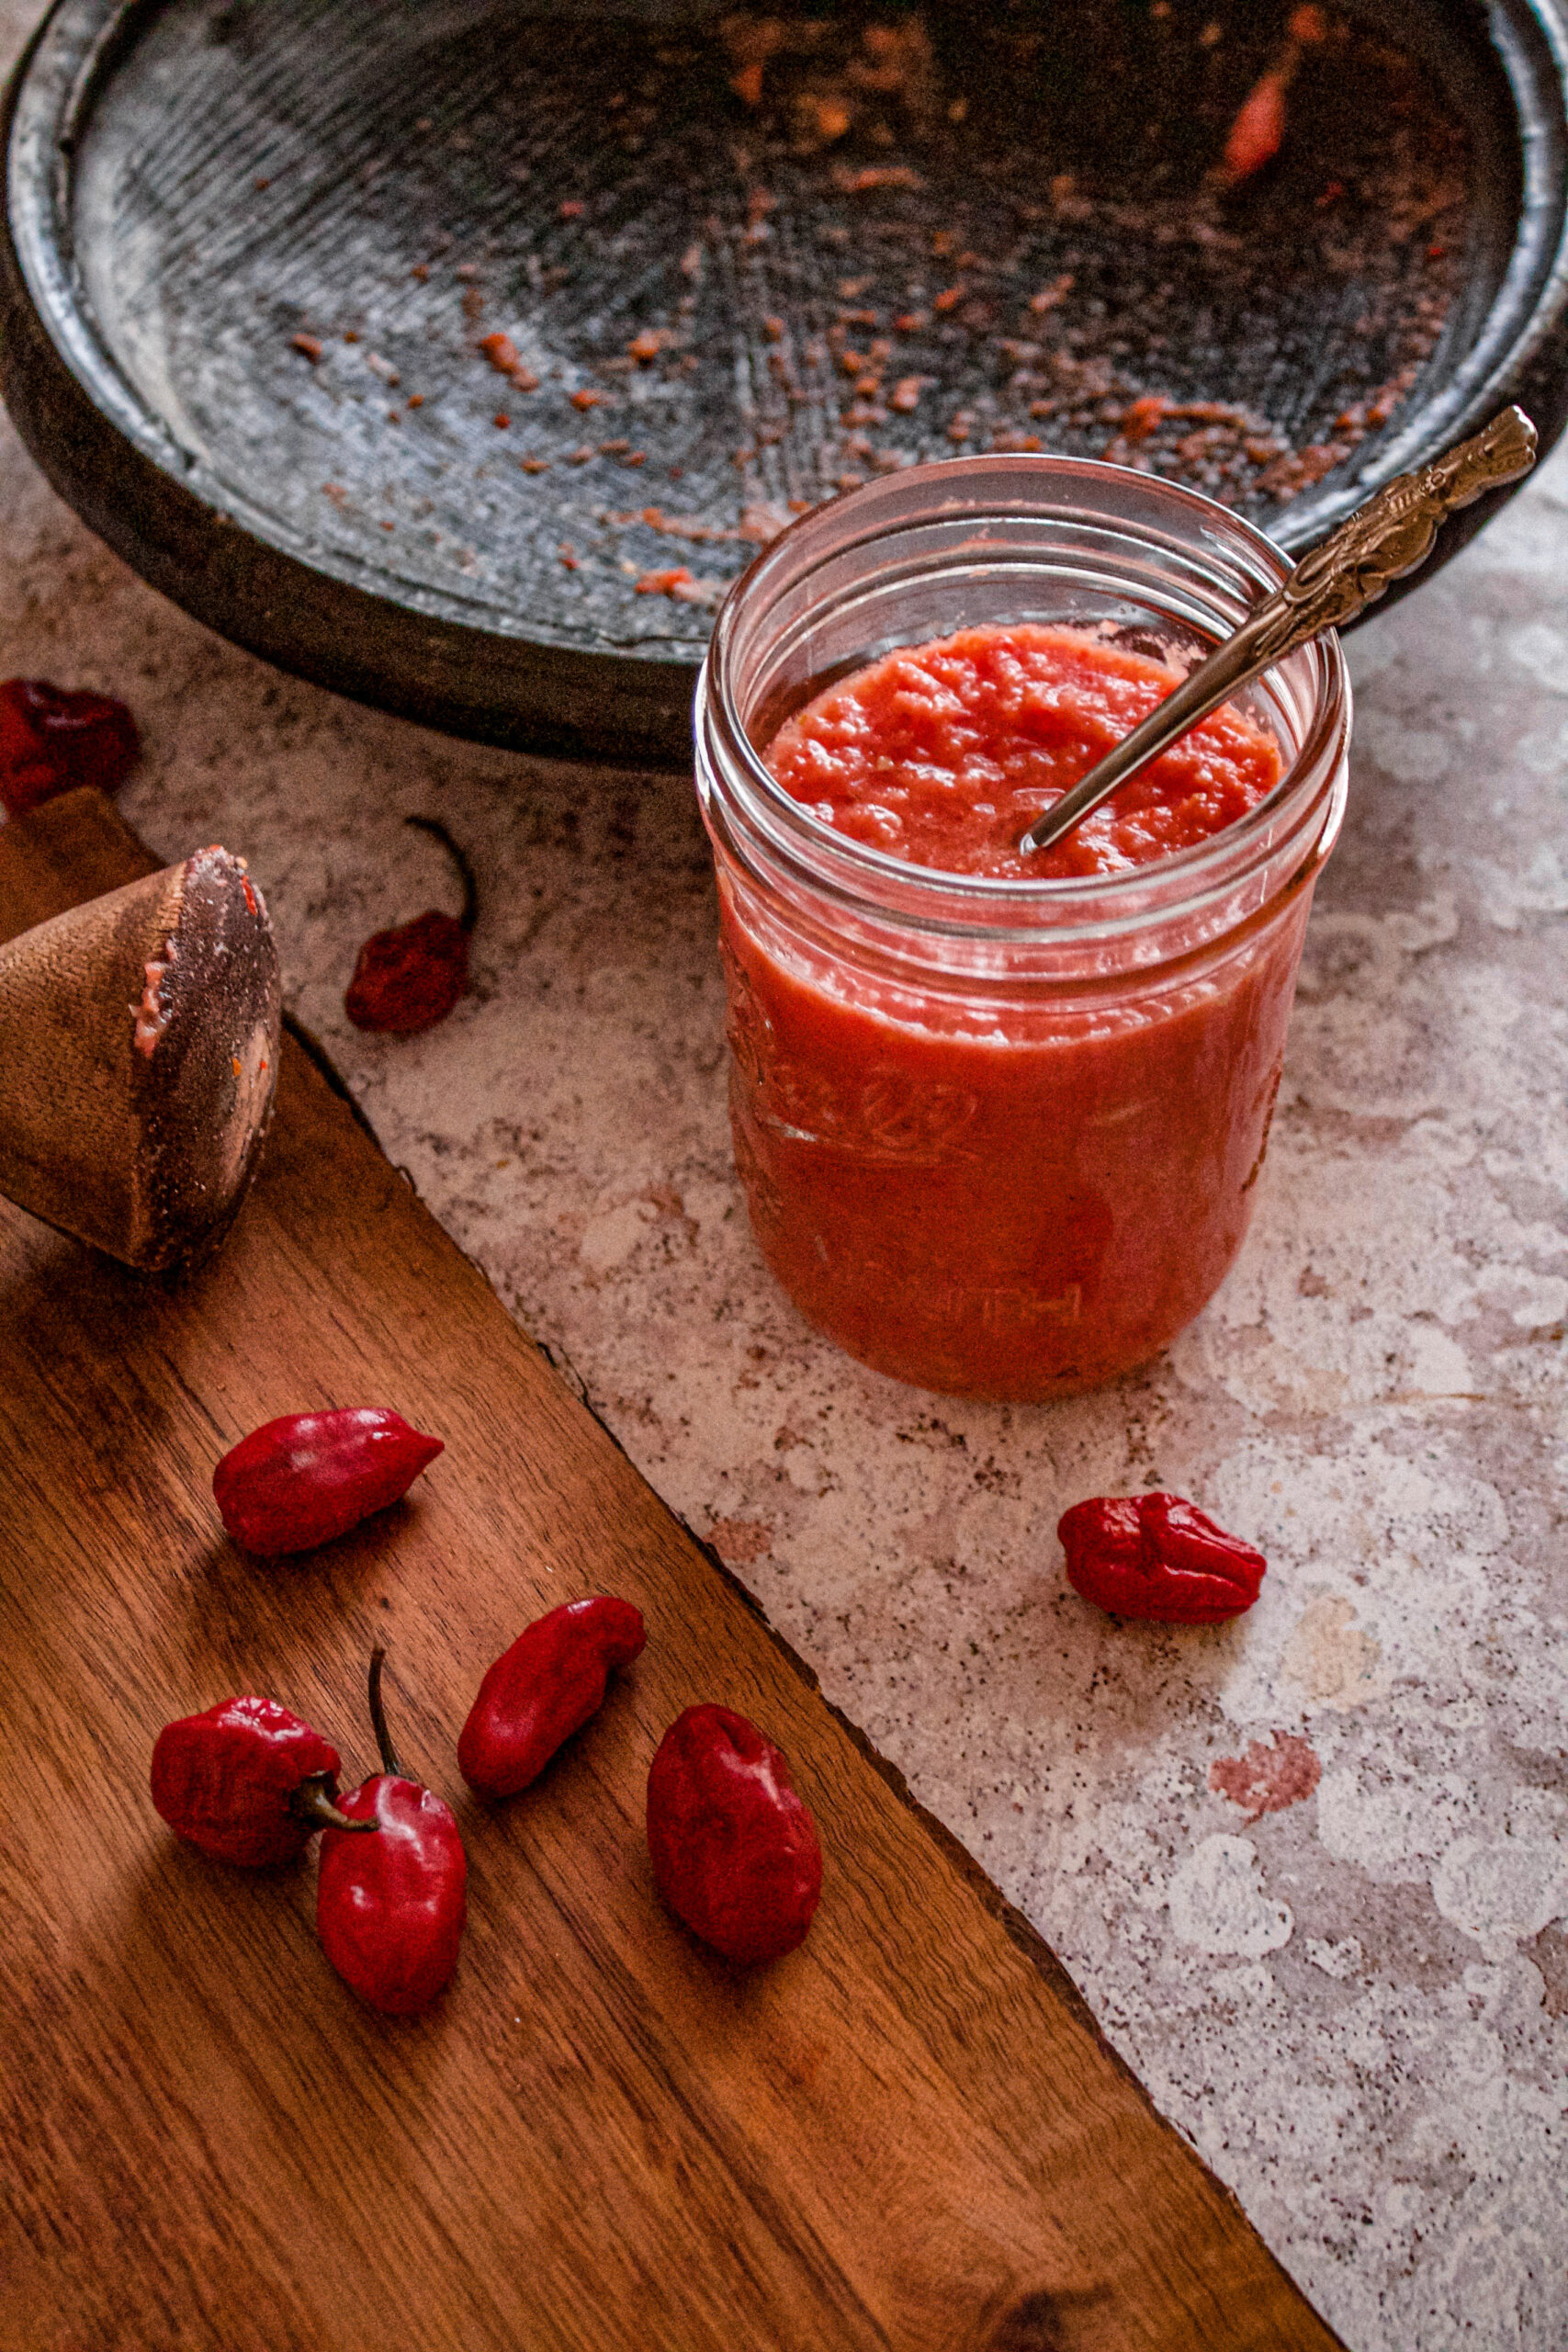 GHANAIAN RAW RED PEPPER